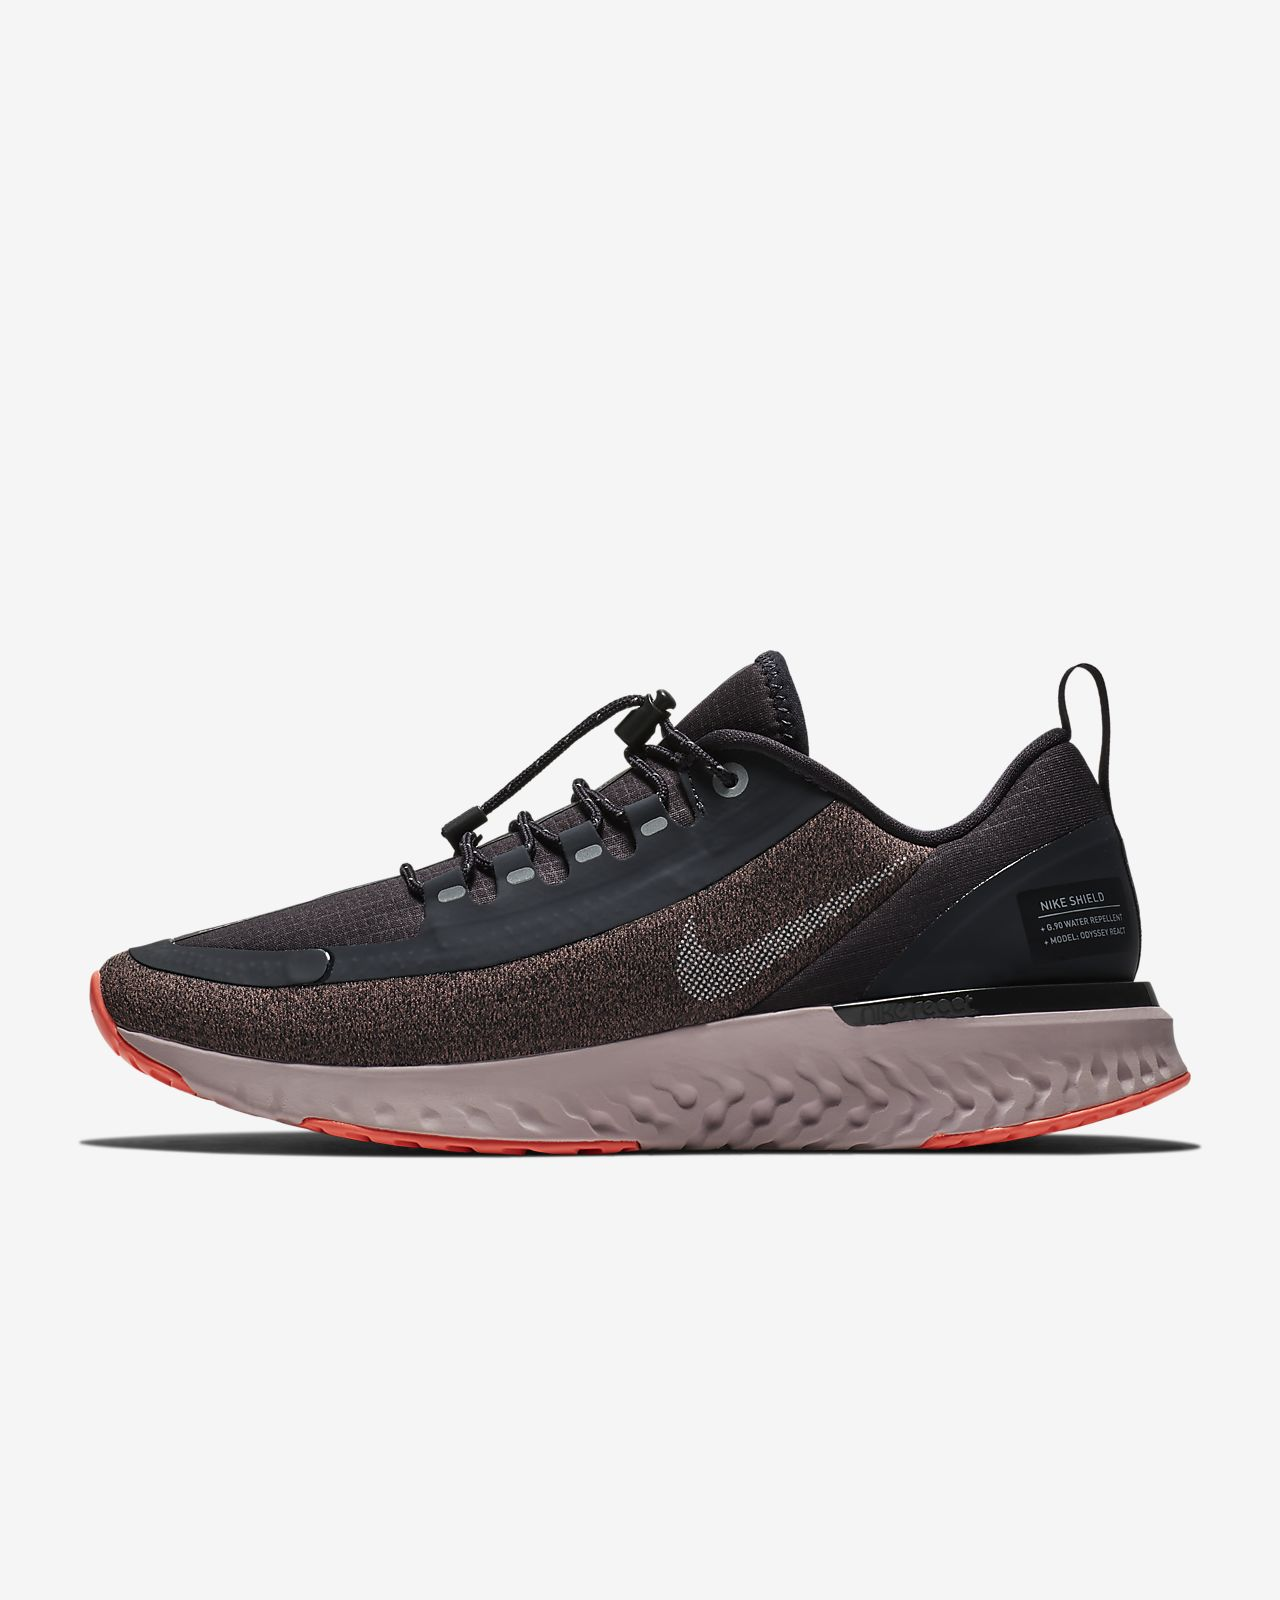 quality design 7e537 8c56c Womens Running Shoe. Nike Odyssey React Shield Water-Repellent